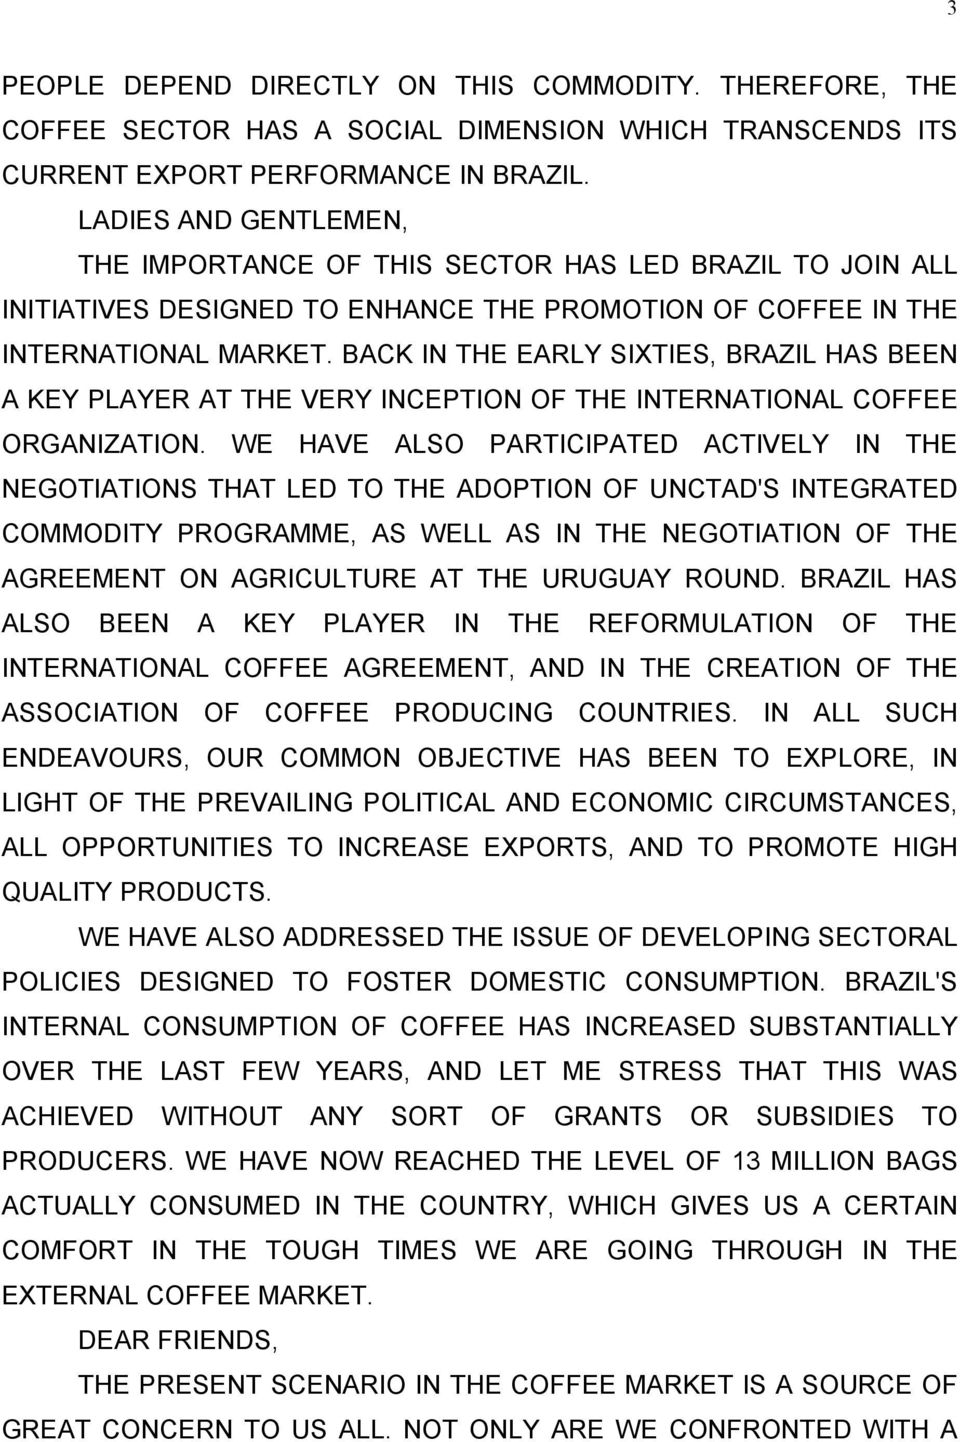 BACK IN THE EARLY SIXTIES, BRAZIL HAS BEEN A KEY PLAYER AT THE VERY INCEPTION OF THE INTERNATIONAL COFFEE ORGANIZATION.